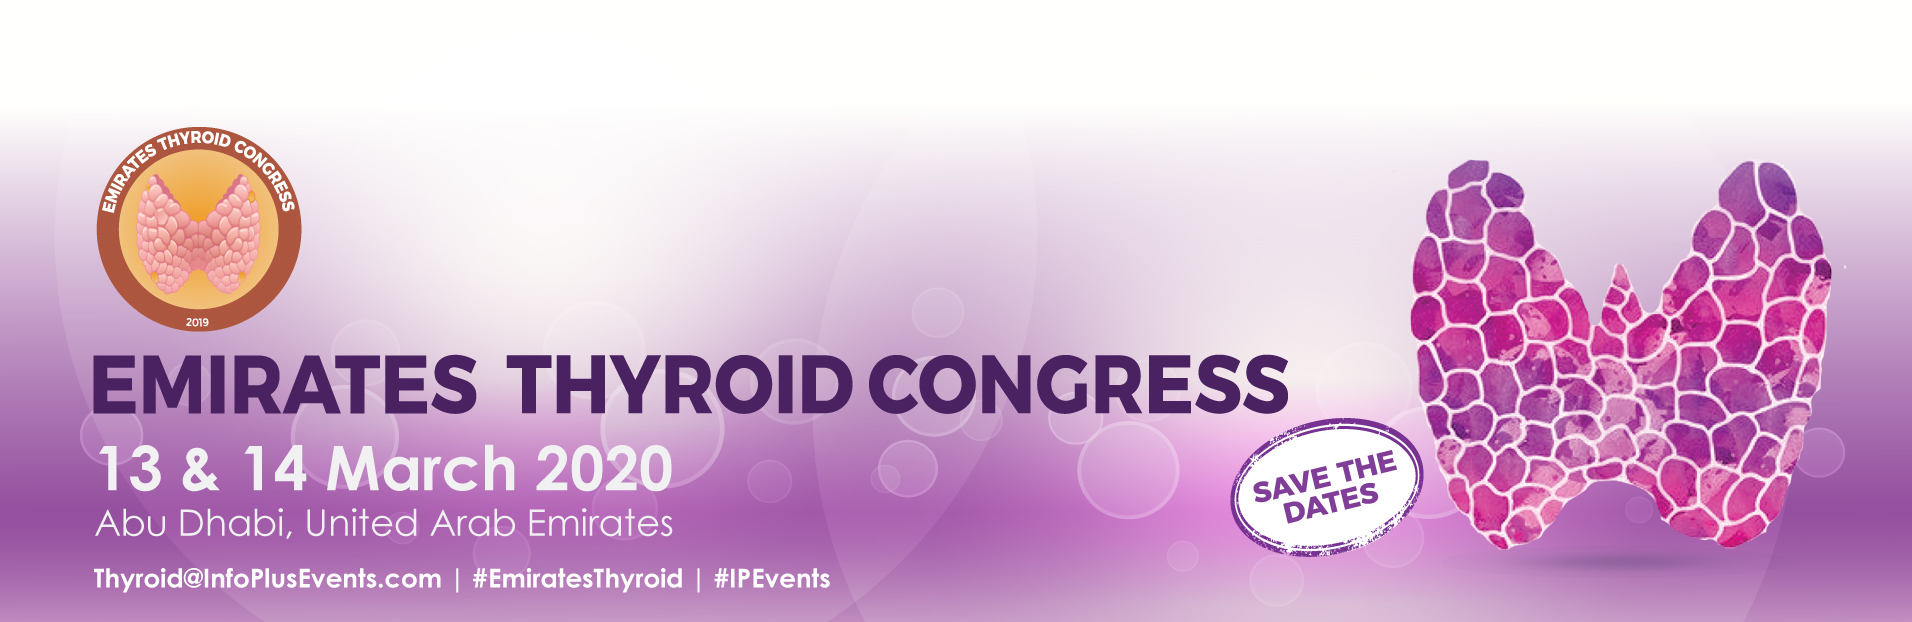 Emirates Thyroid Congress – Emirates Thyroid Congress